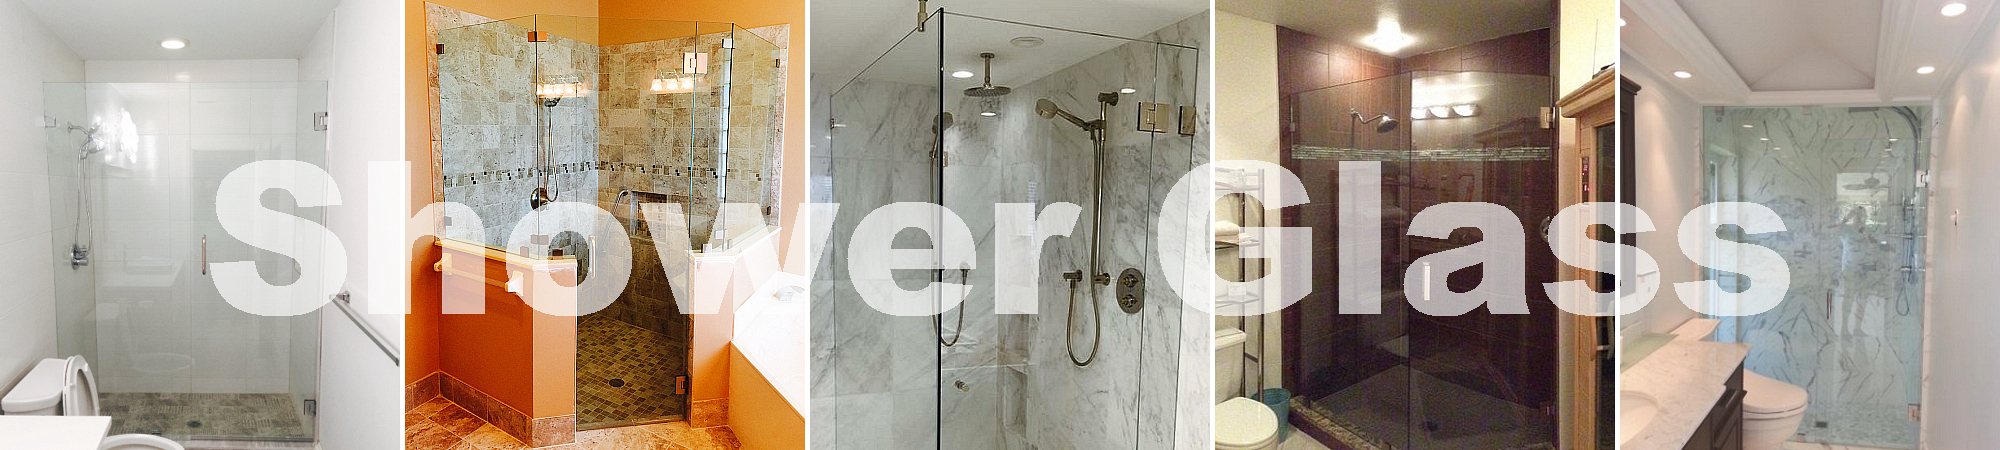 Shower Glass & Shower Enclosures - Installation & Replacement